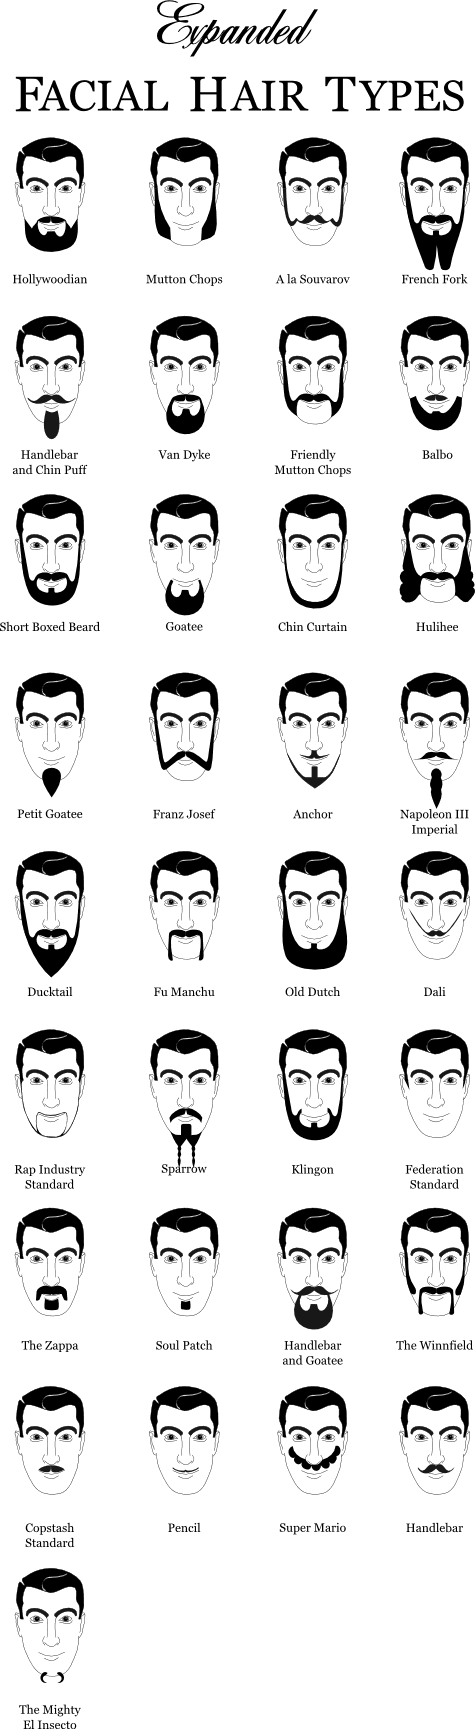 http://www.dyers.org/images/beards/beardtypes.png